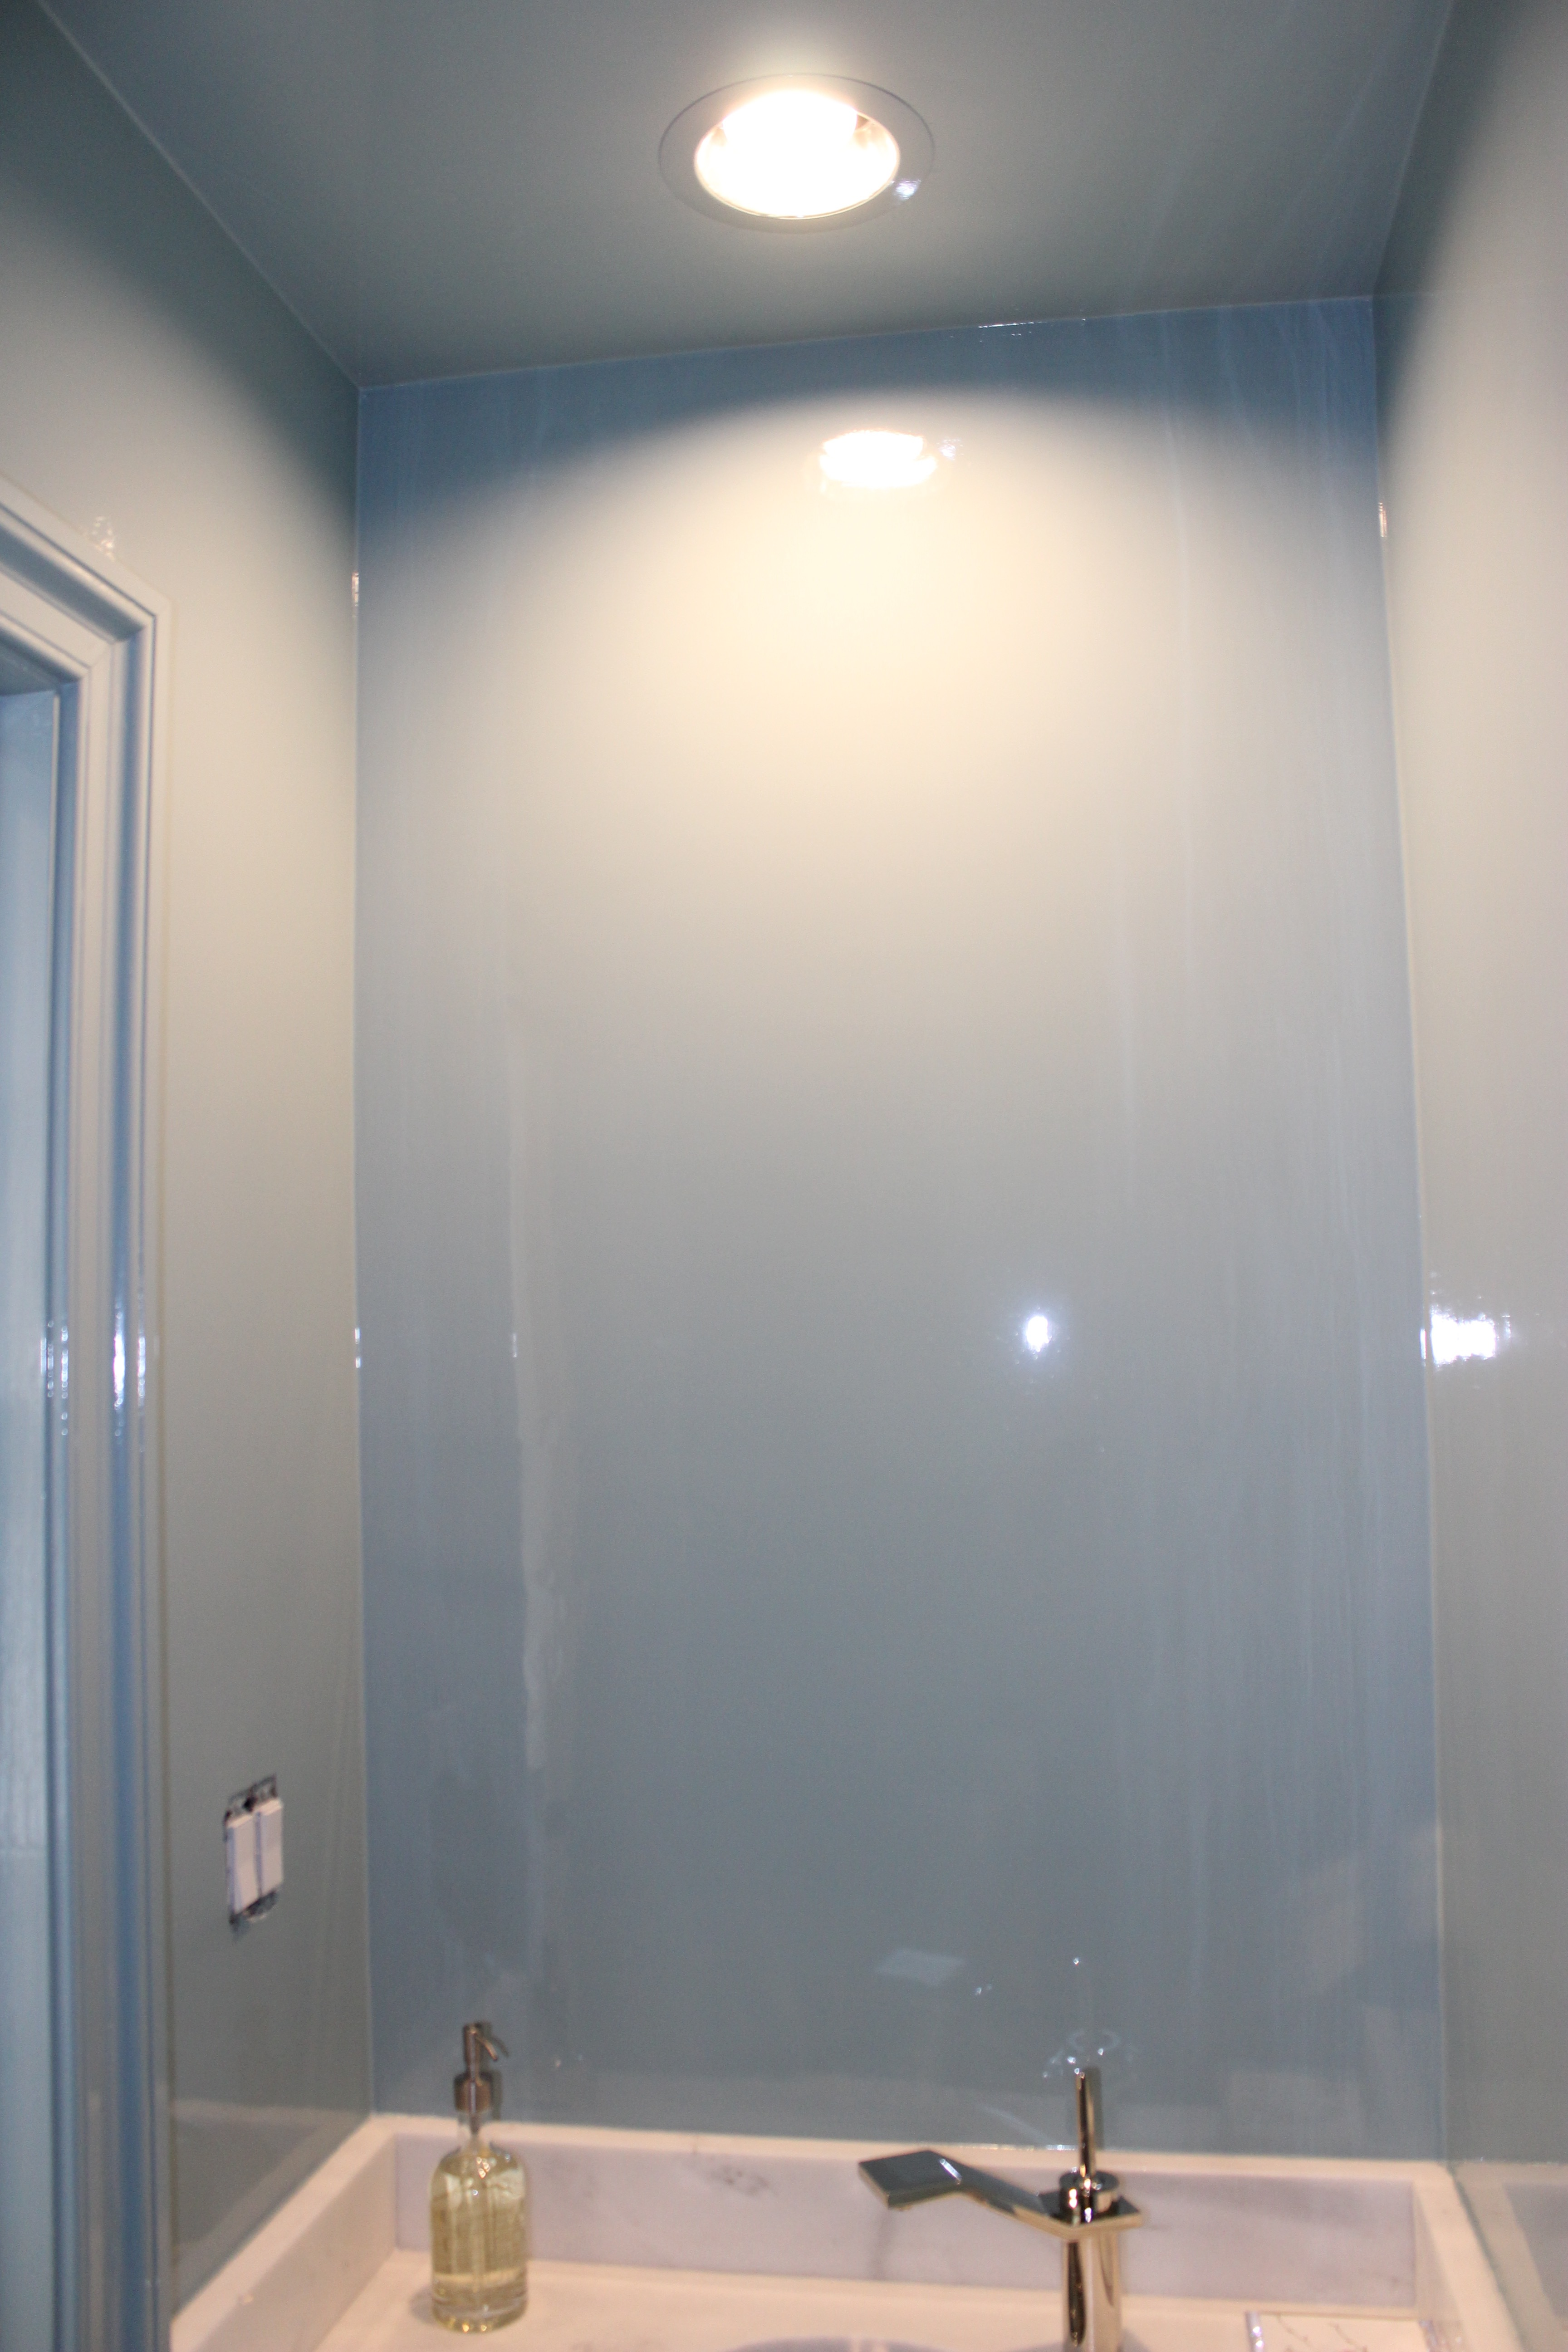 High Gloss Paints Beautiful Find This Pin And More On High Gloss Ceilings By With High Gloss